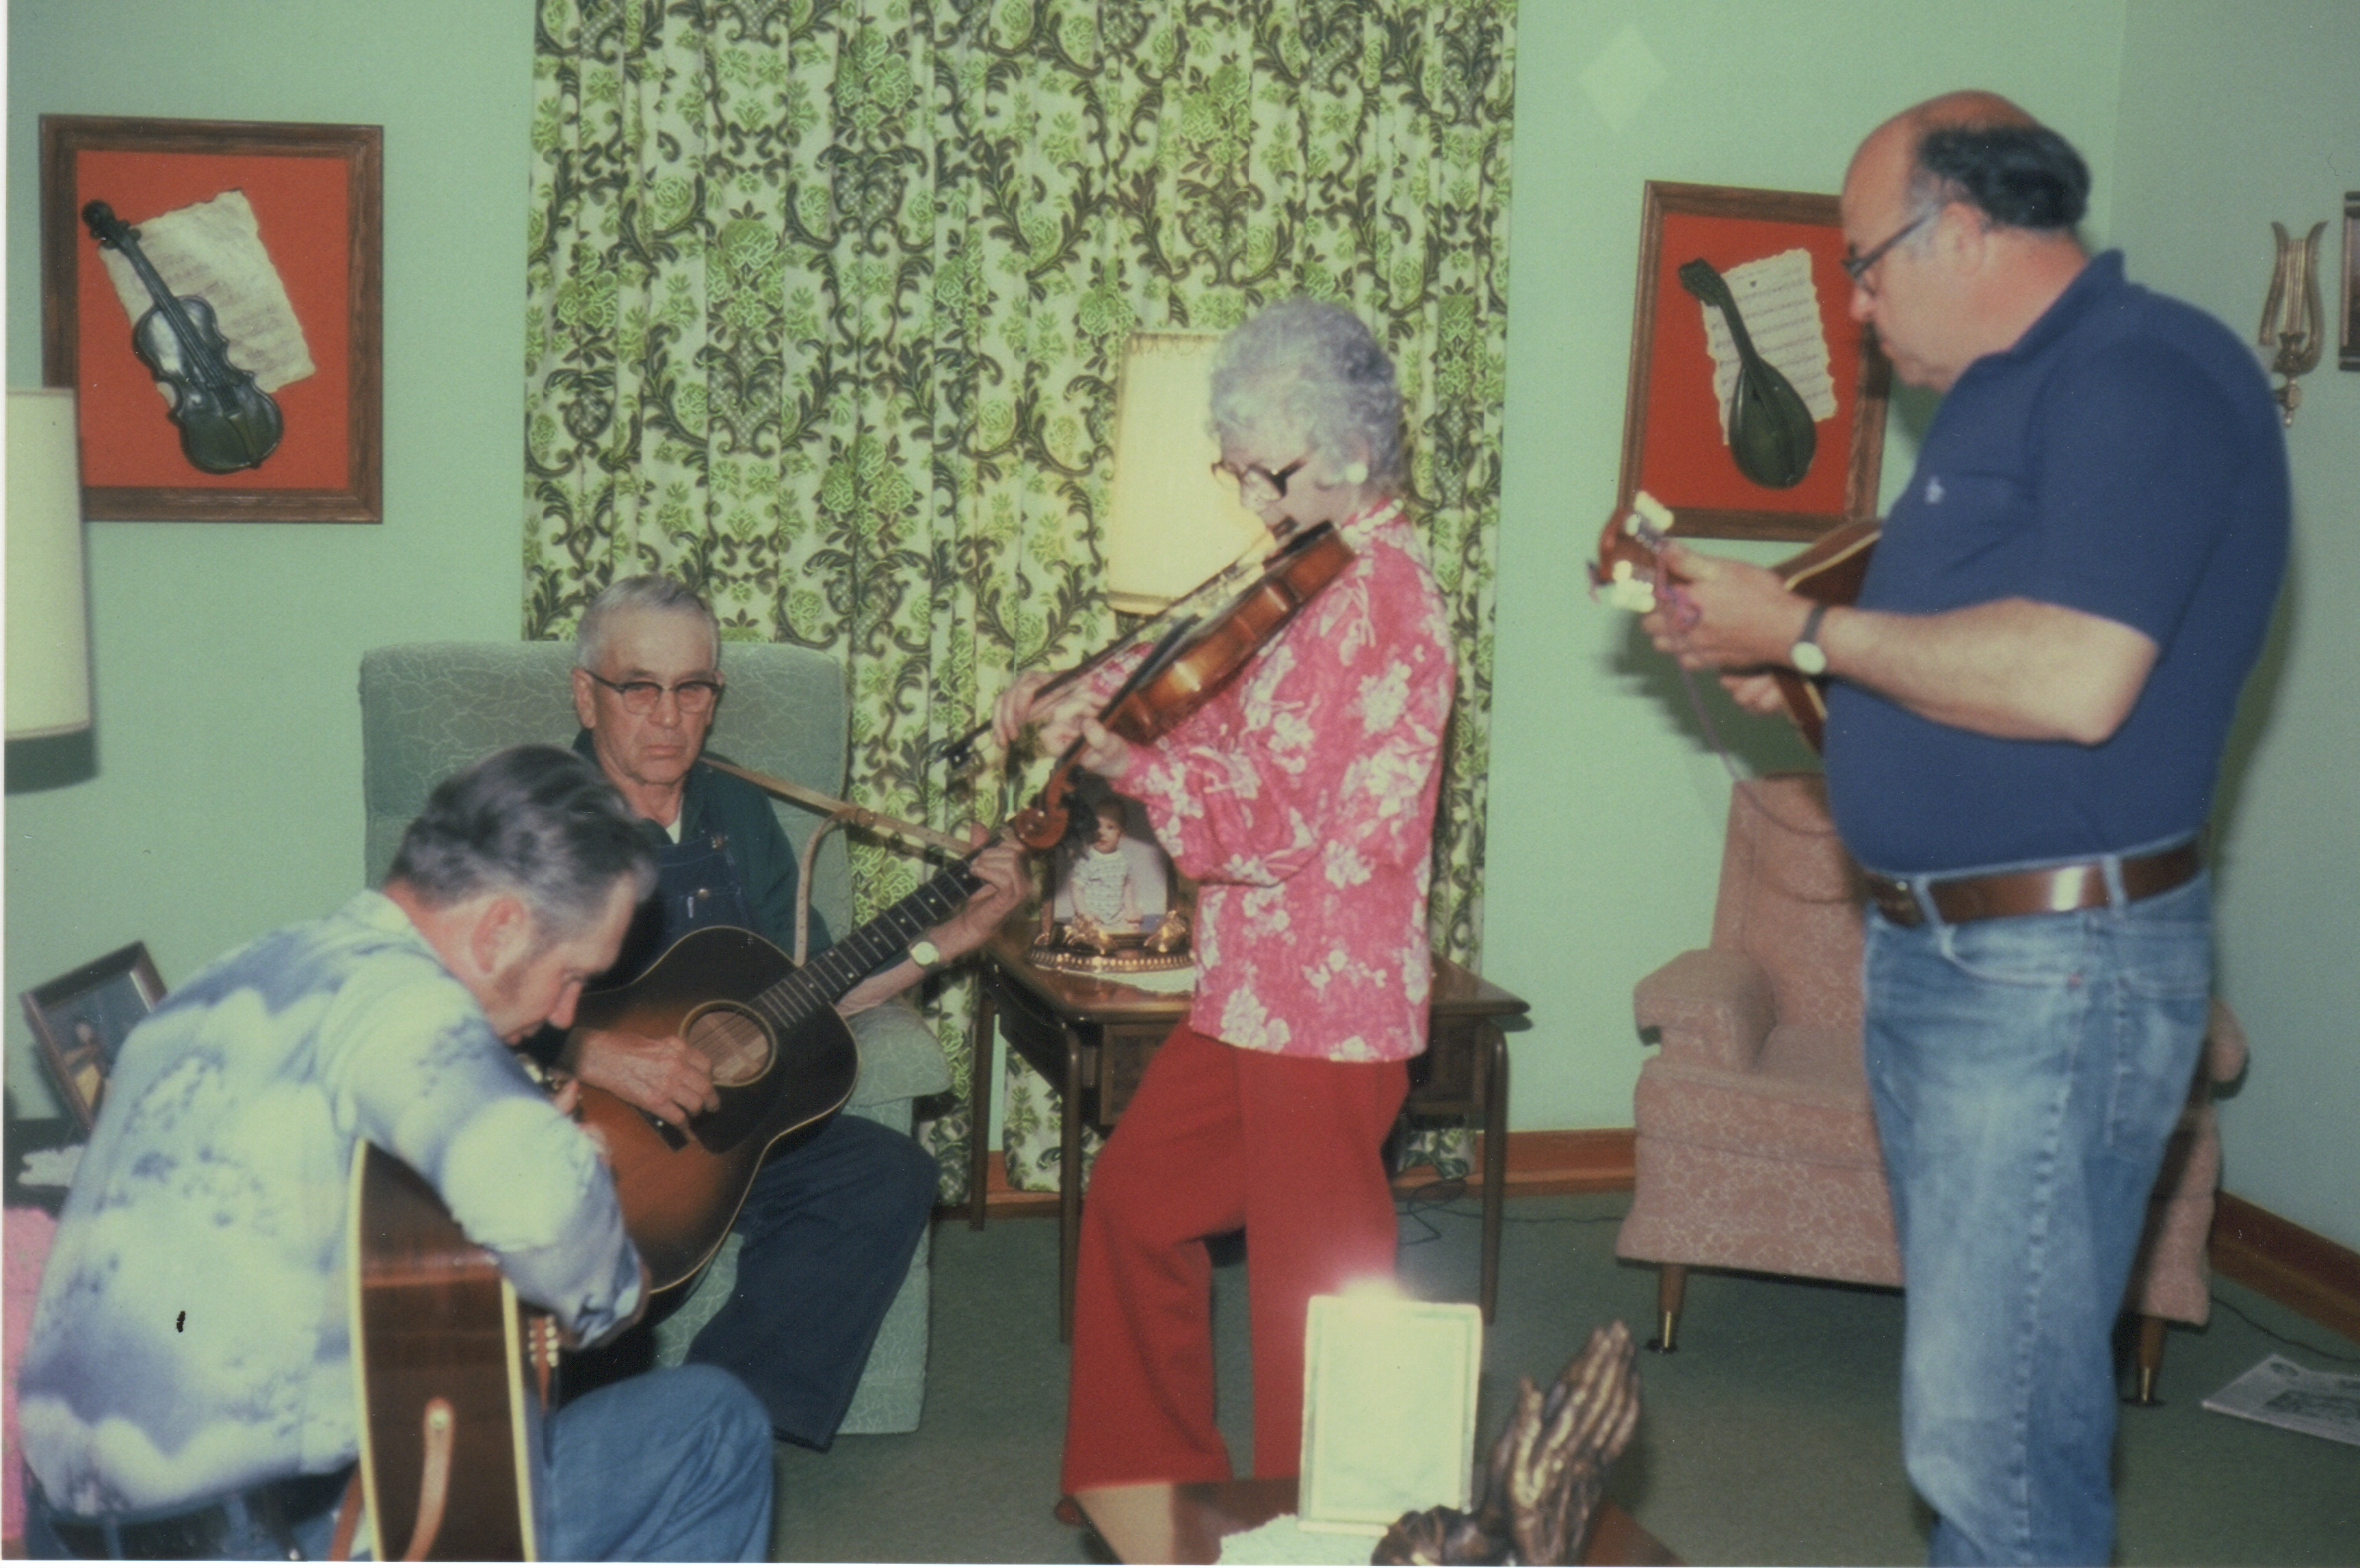 House jam in the late 1960s/early 1970s